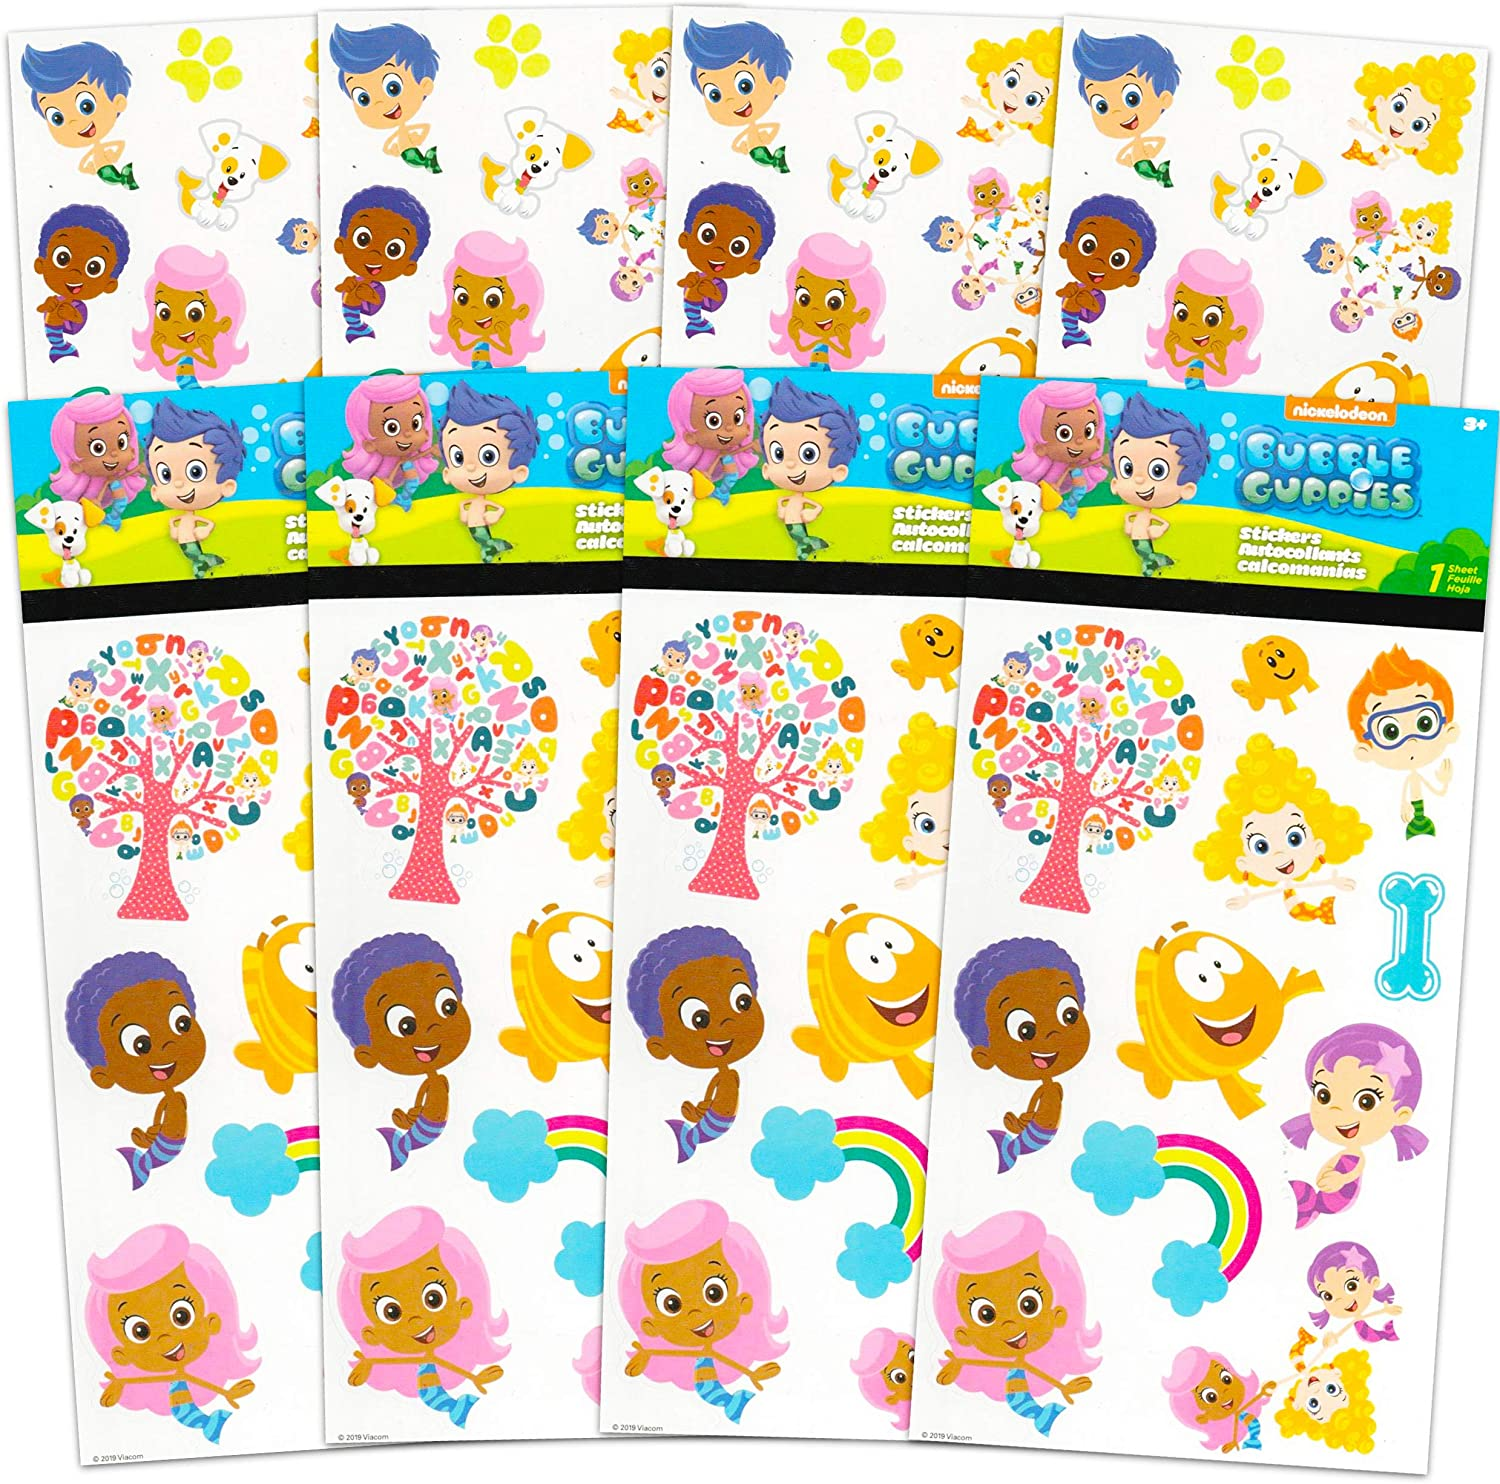 Bubble Guppies Stickers Party Favors Bundle ~ 8 Sheets Bubble Guppies Stickers Featuring Nonny, Molly, Gil, and More (Bubble Guppies Party Supplies)